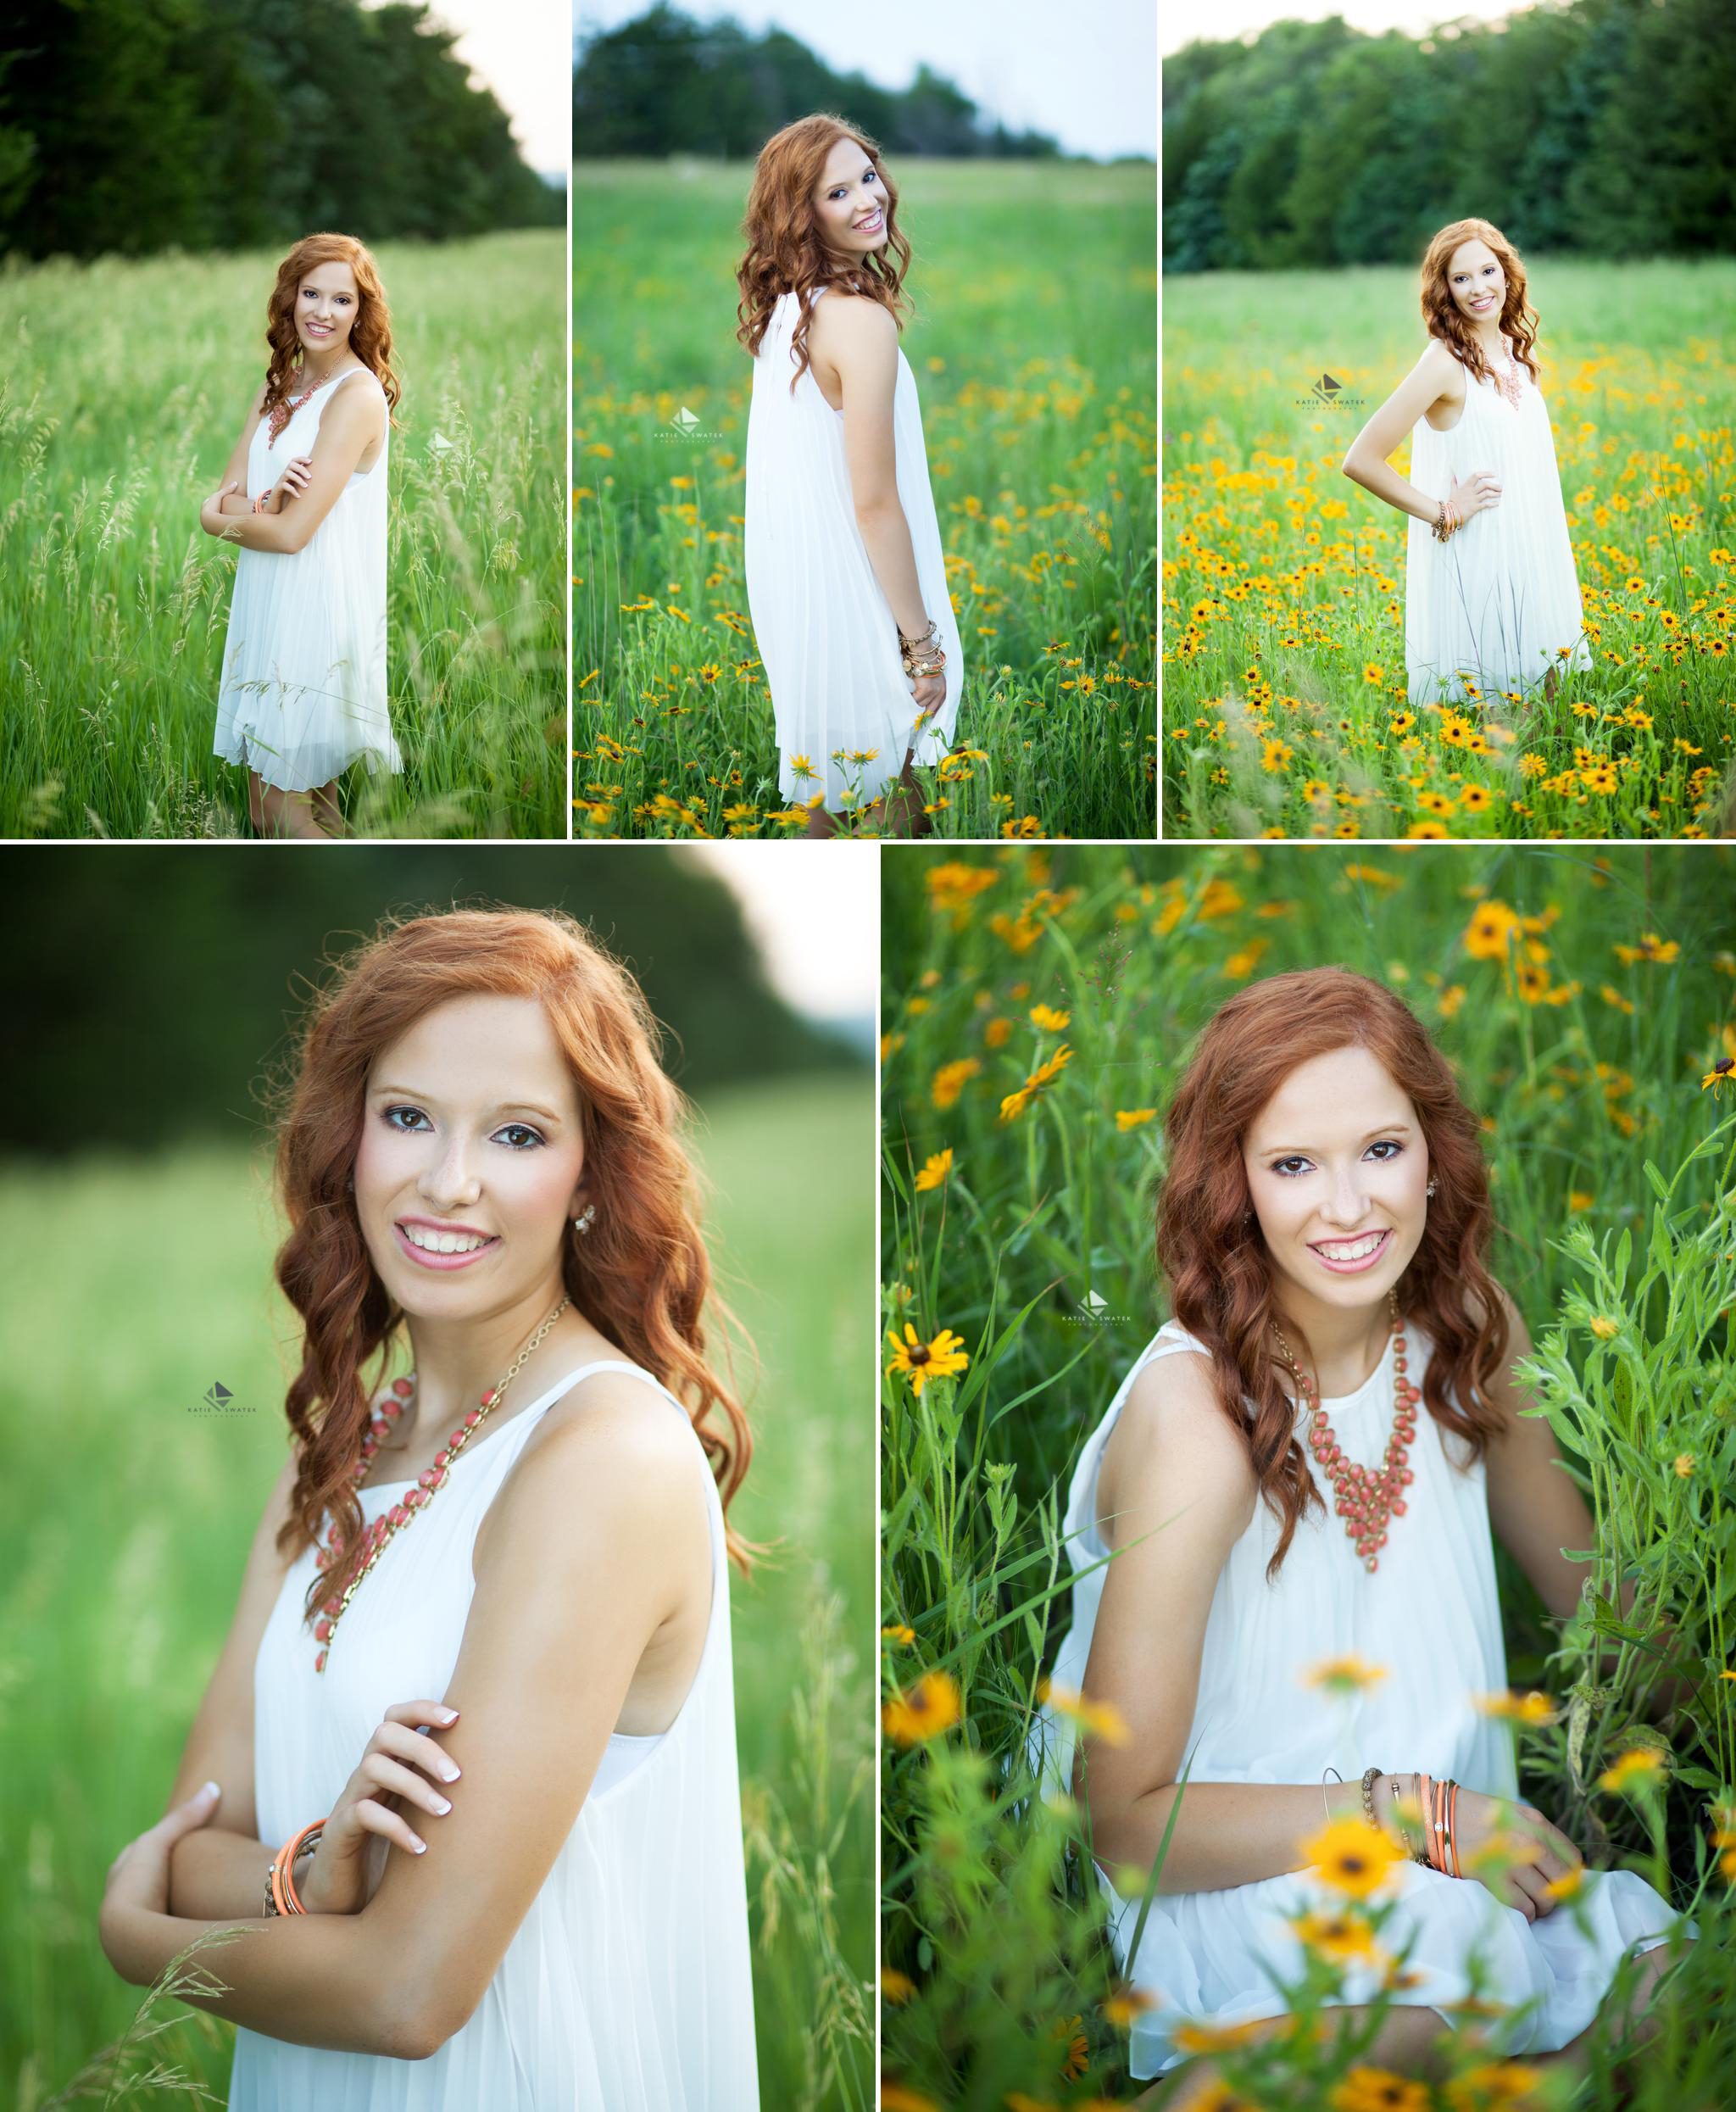 red headed senior girl in a white dress and coral necklace posing for senior pictures in a yellow wildflower patch